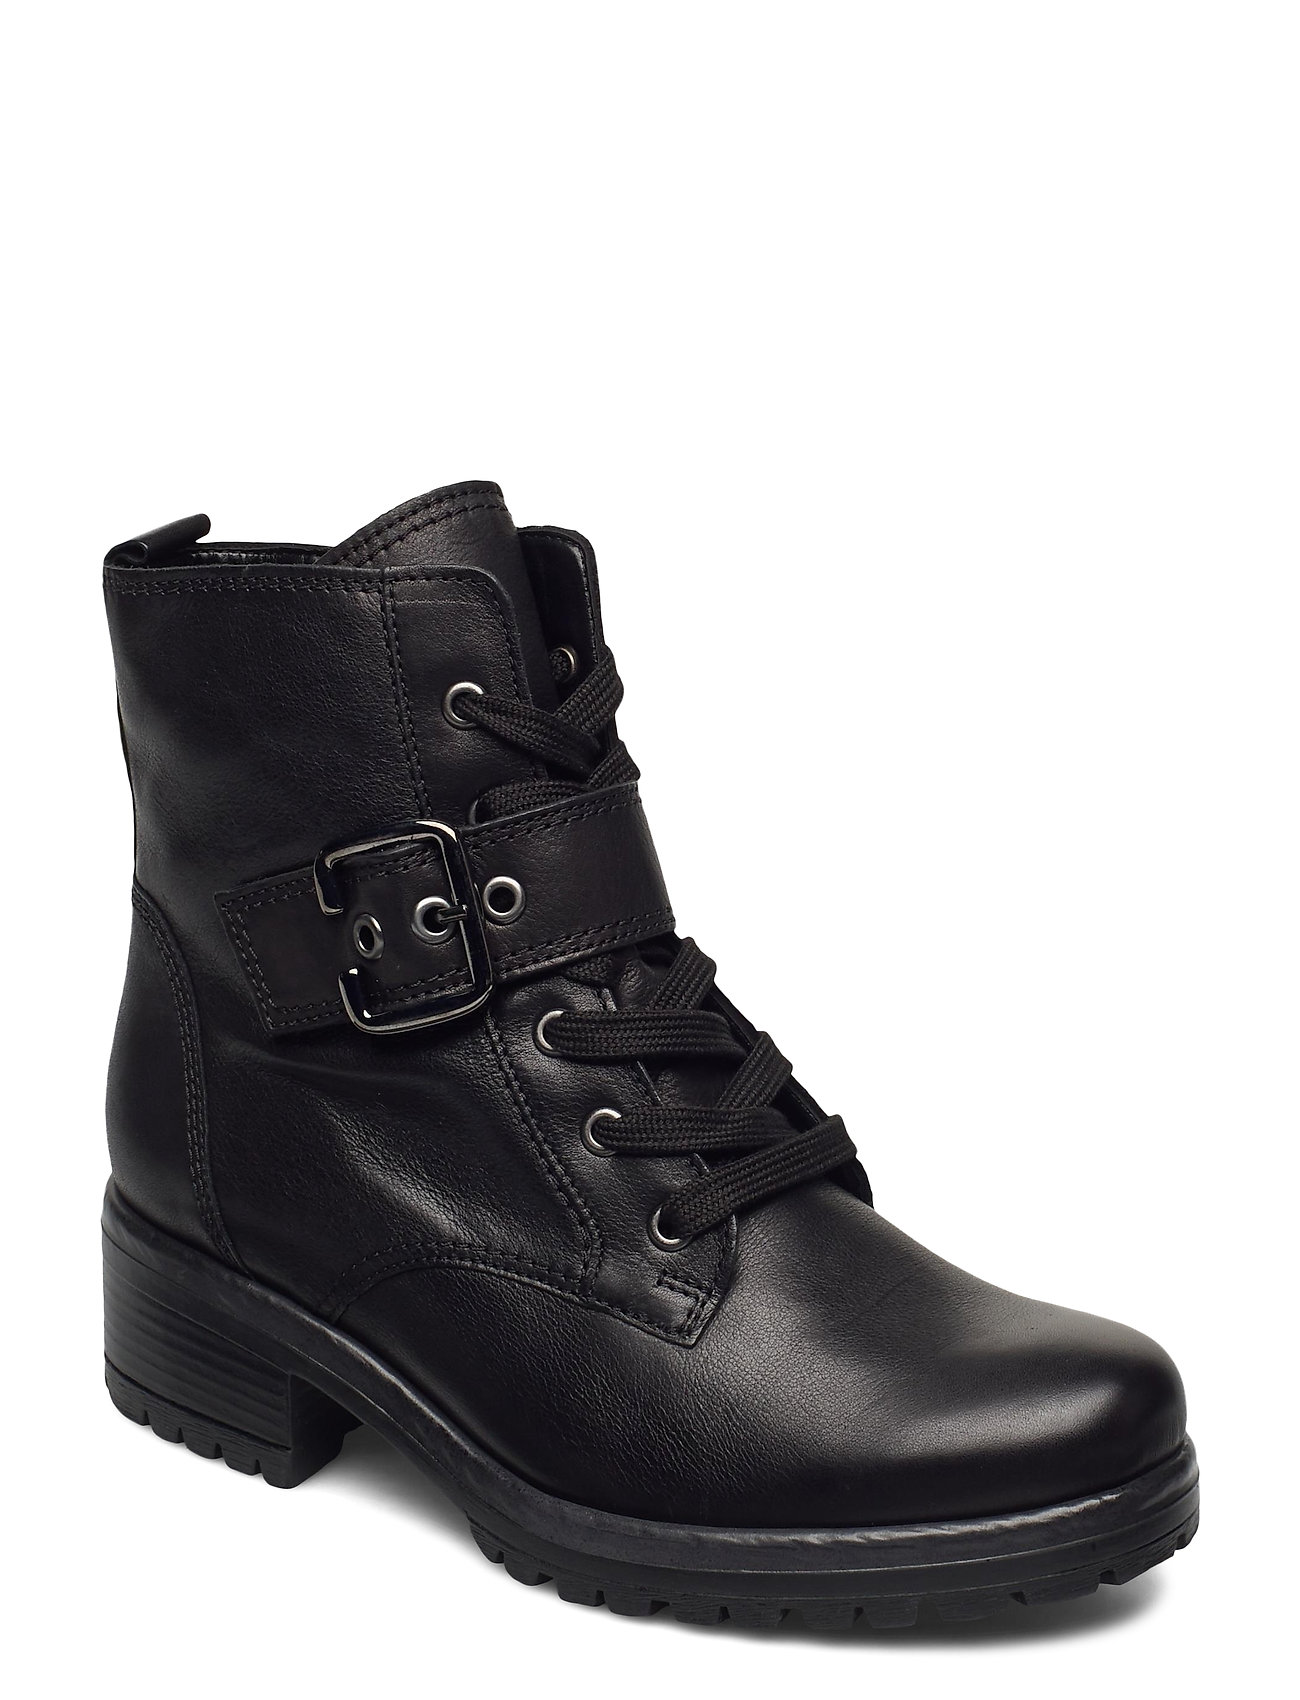 Image of Ankle Boot Shoes Boots Ankle Boots Ankle Boot - Heel Sort Gabor (3462700079)